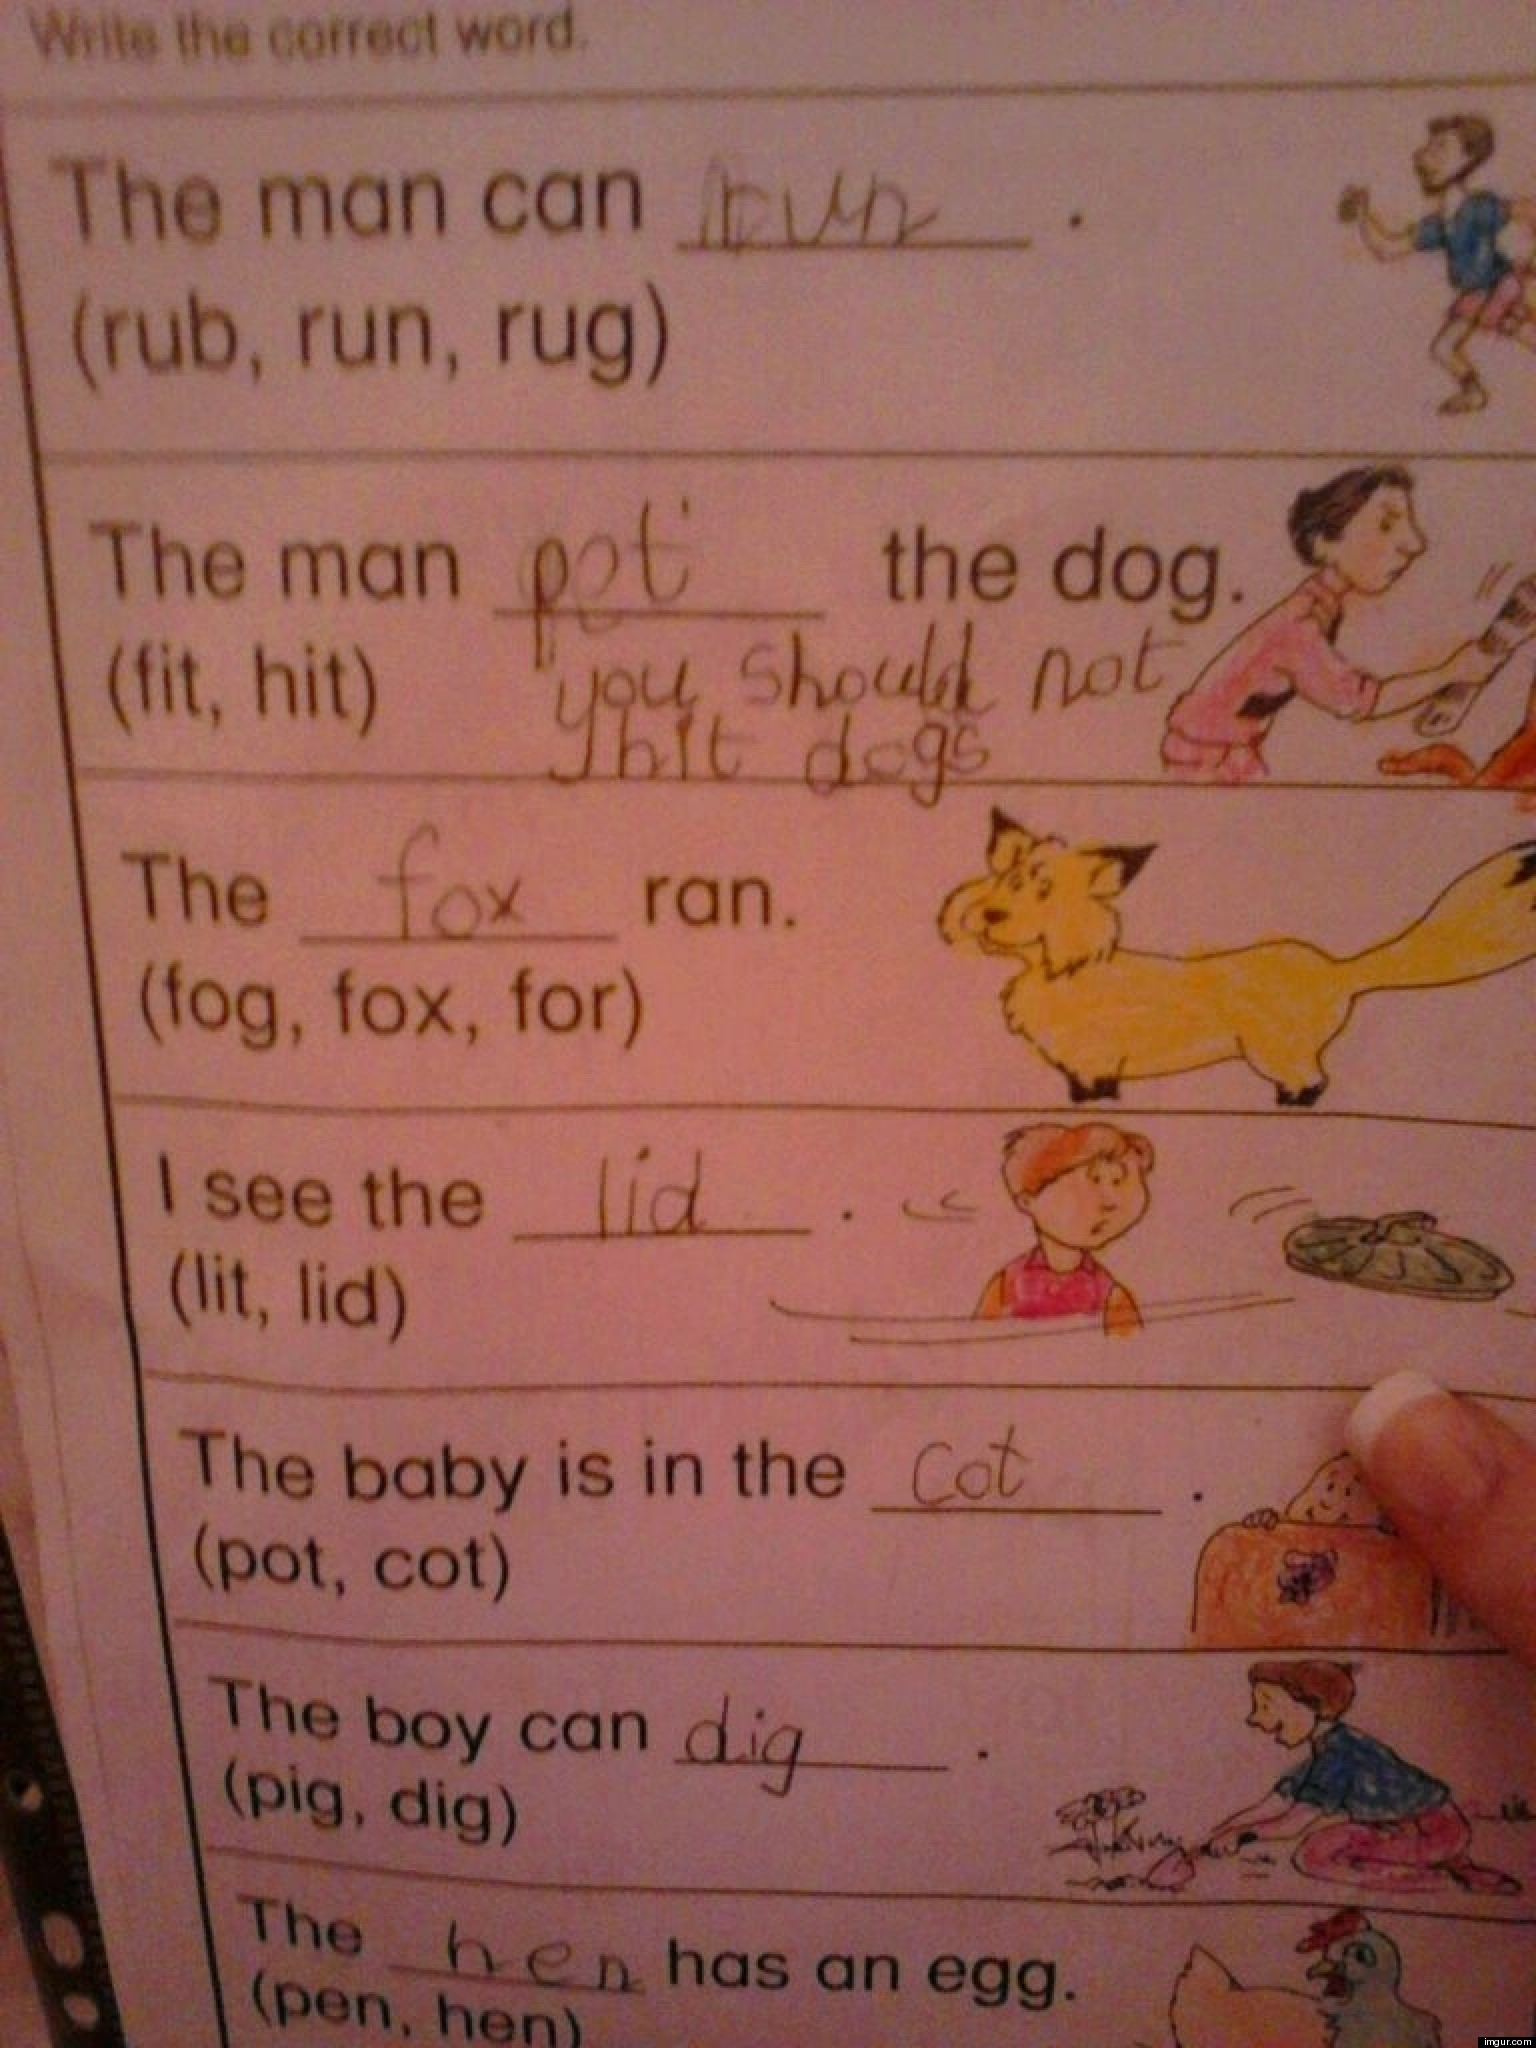 Cute Kid Note Of The Day You Should Not Hit Dogs